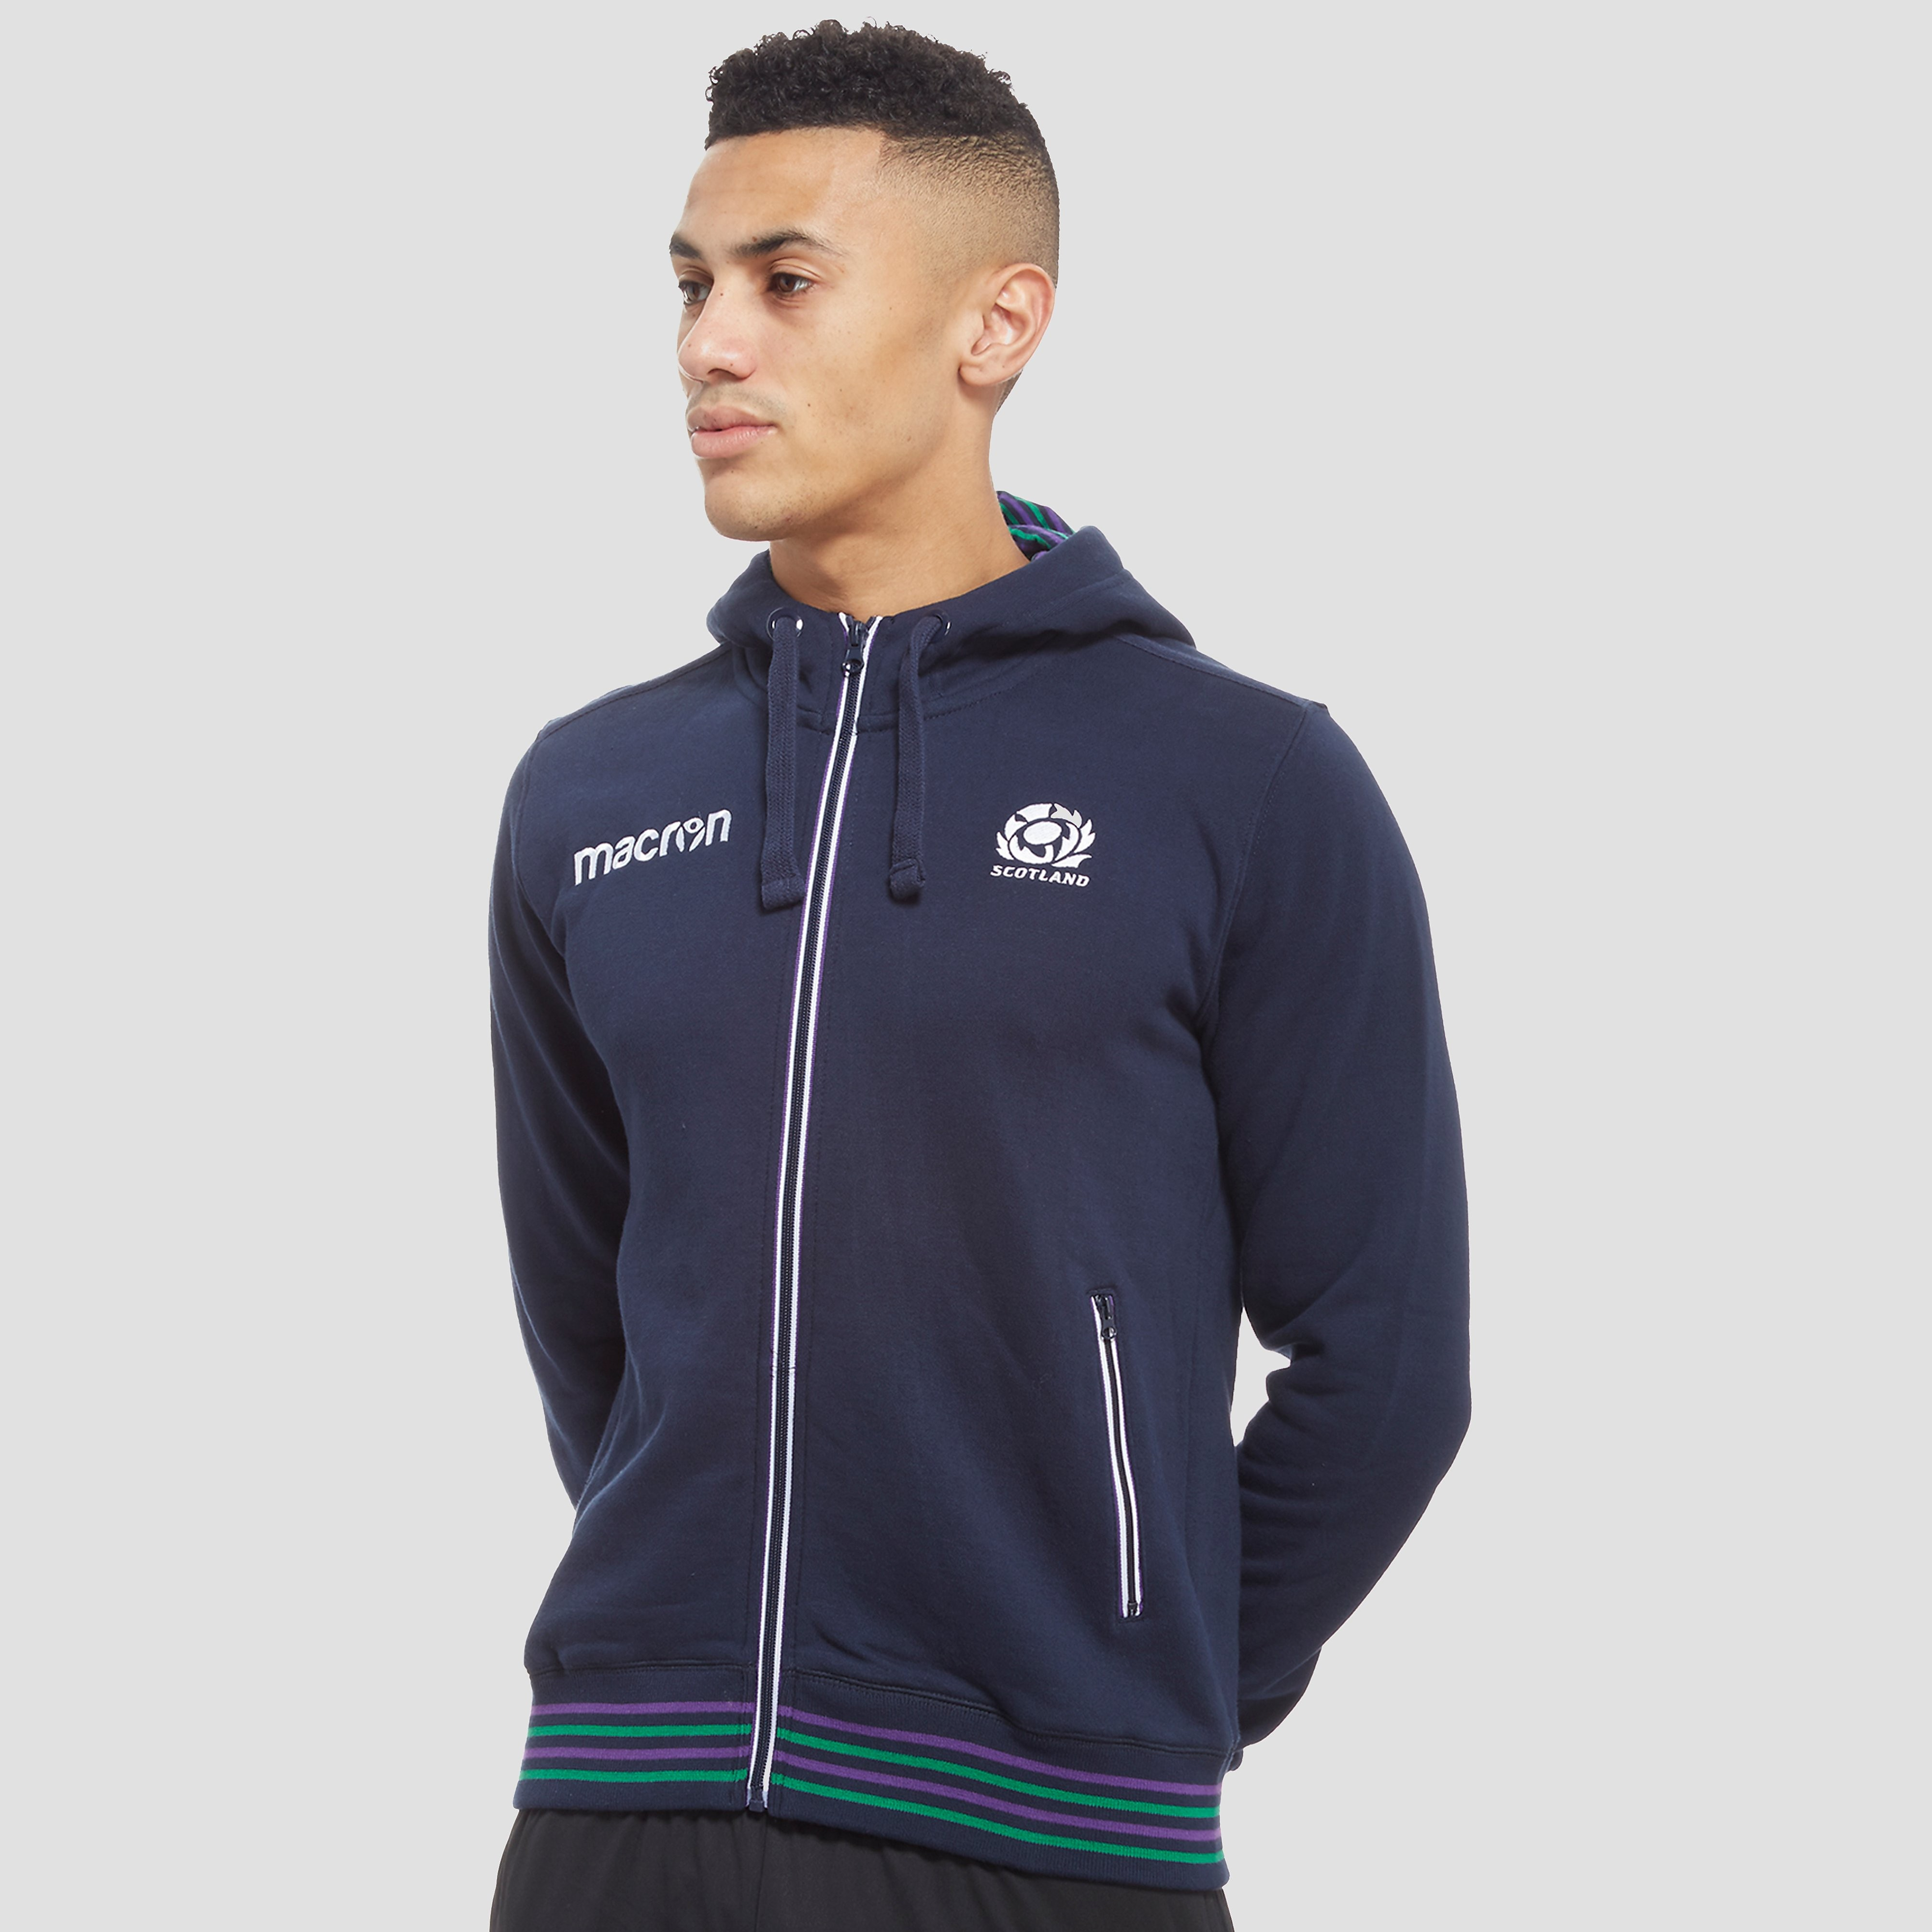 Macron Scotland Rugby Union Men's Hoodie